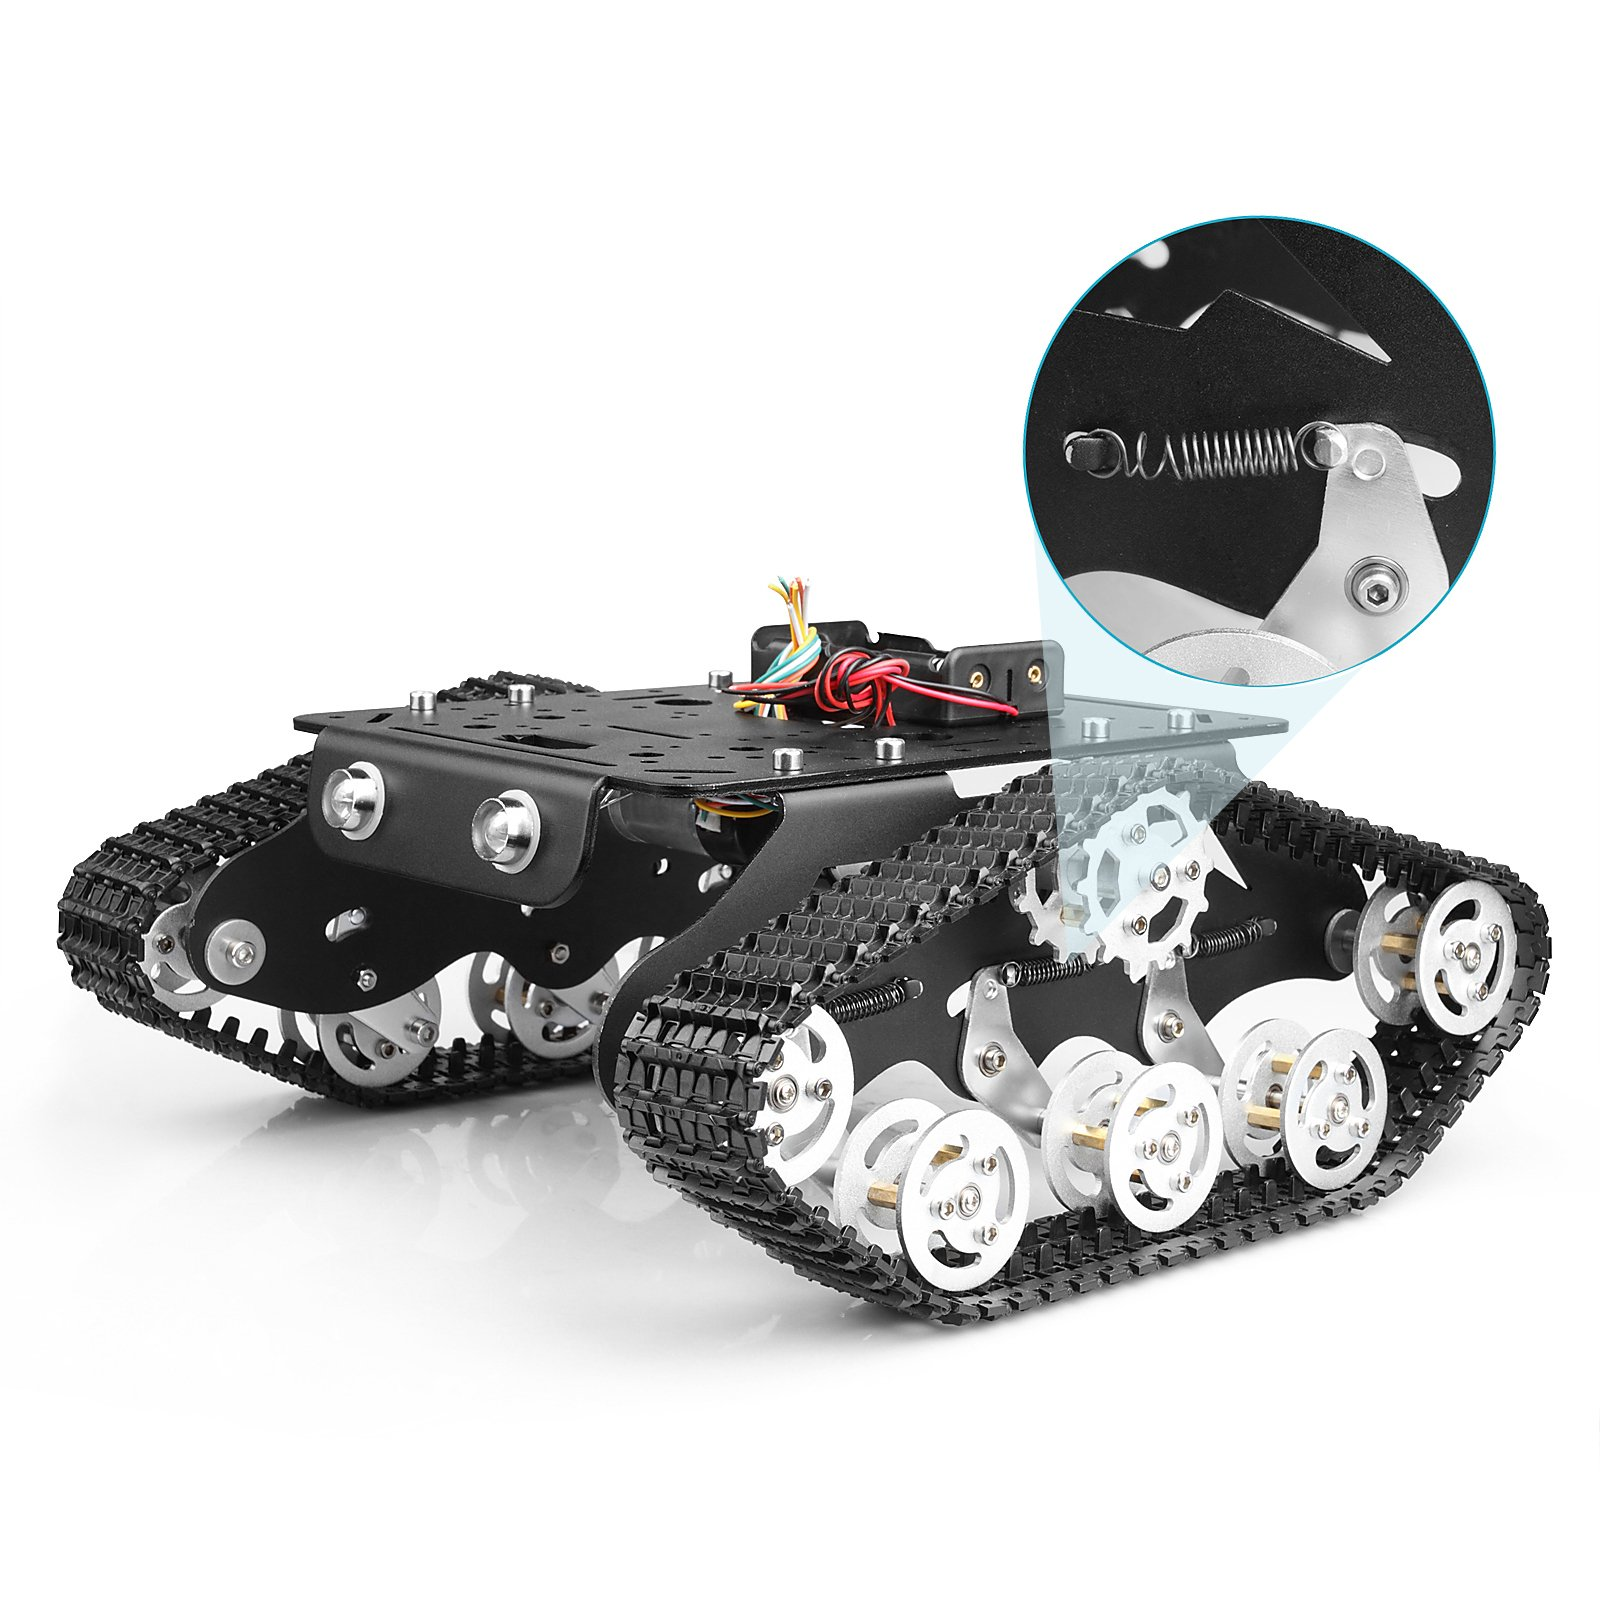 Tracked Robot Smart Car Platform with Damping Effect System Metal Tank Chassis with Powerful Dual DC 9V Motor for Arduino Raspberry Pi DIY Kit STEM Education, Easy Assembly (11.09.84.5inch, 3.28lb)